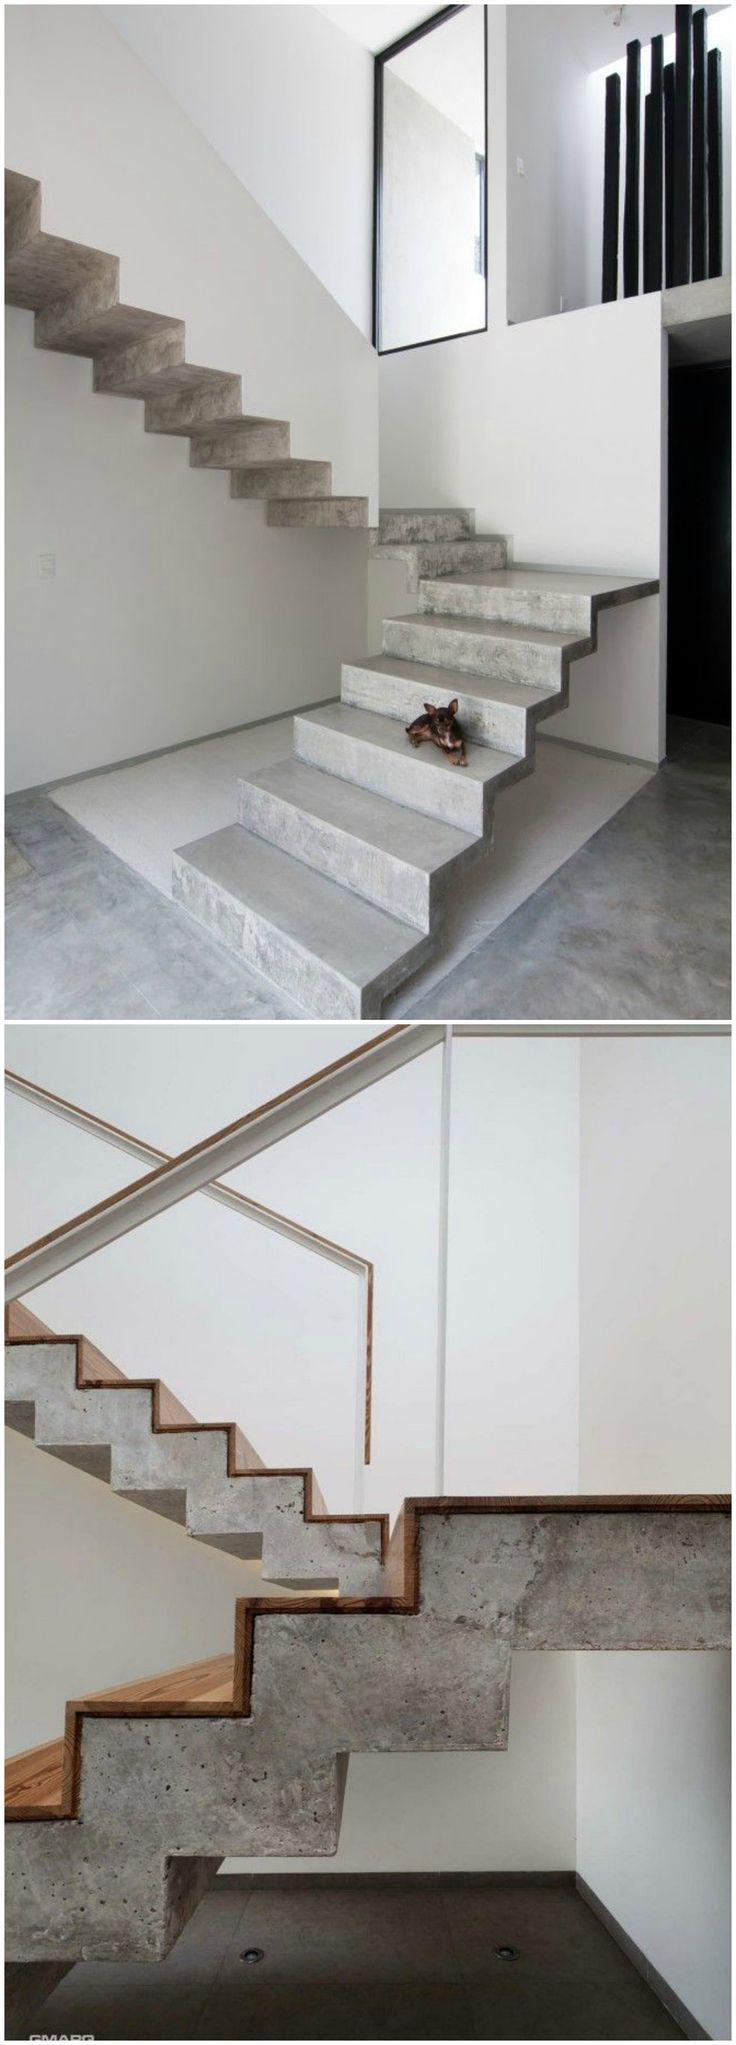 17 mejores ideas sobre dise o de escalera en pinterest for Gradas de interiores